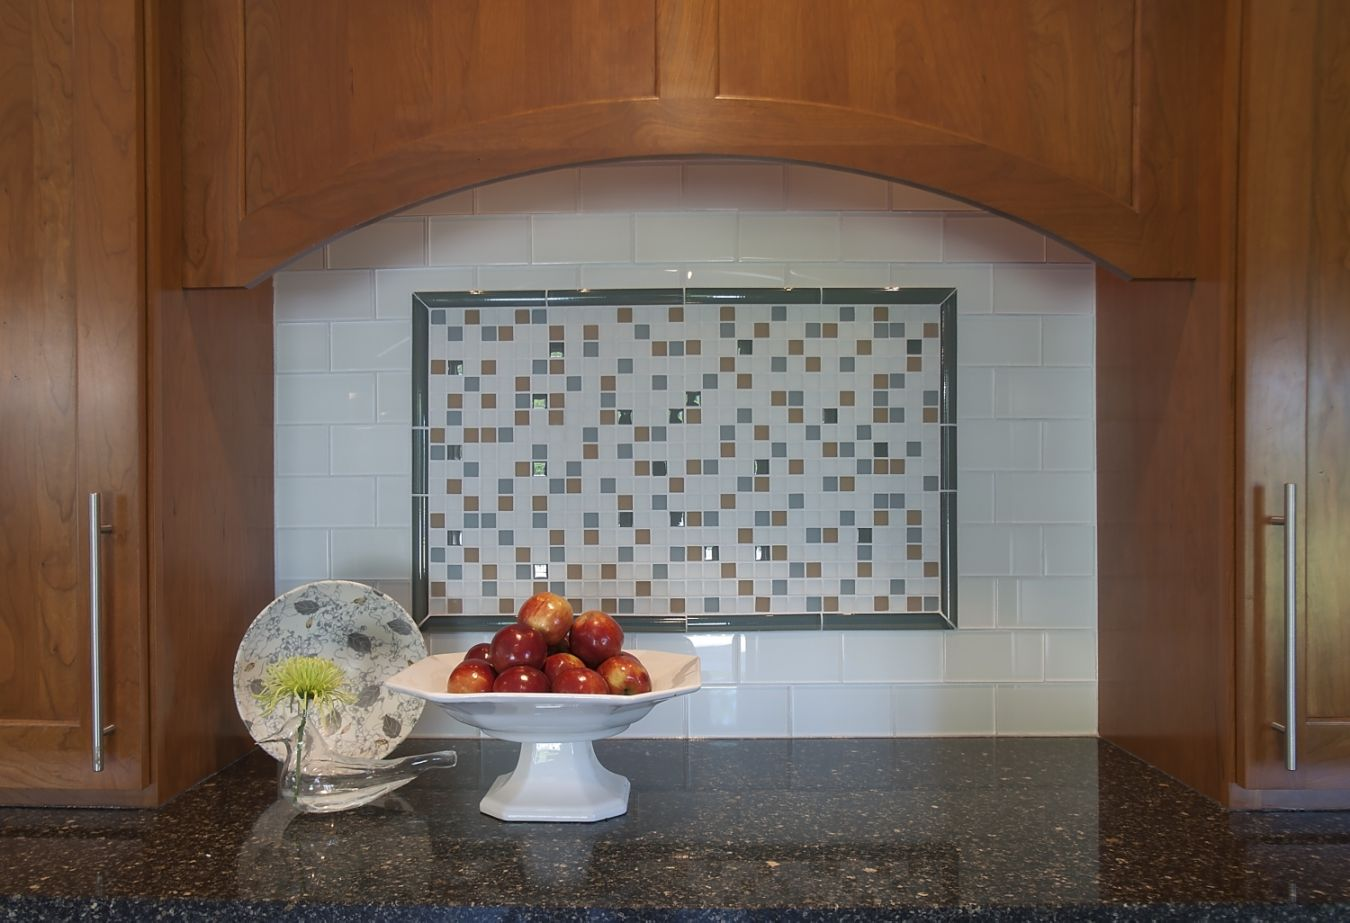 One stop kitchen and bath - Countertop